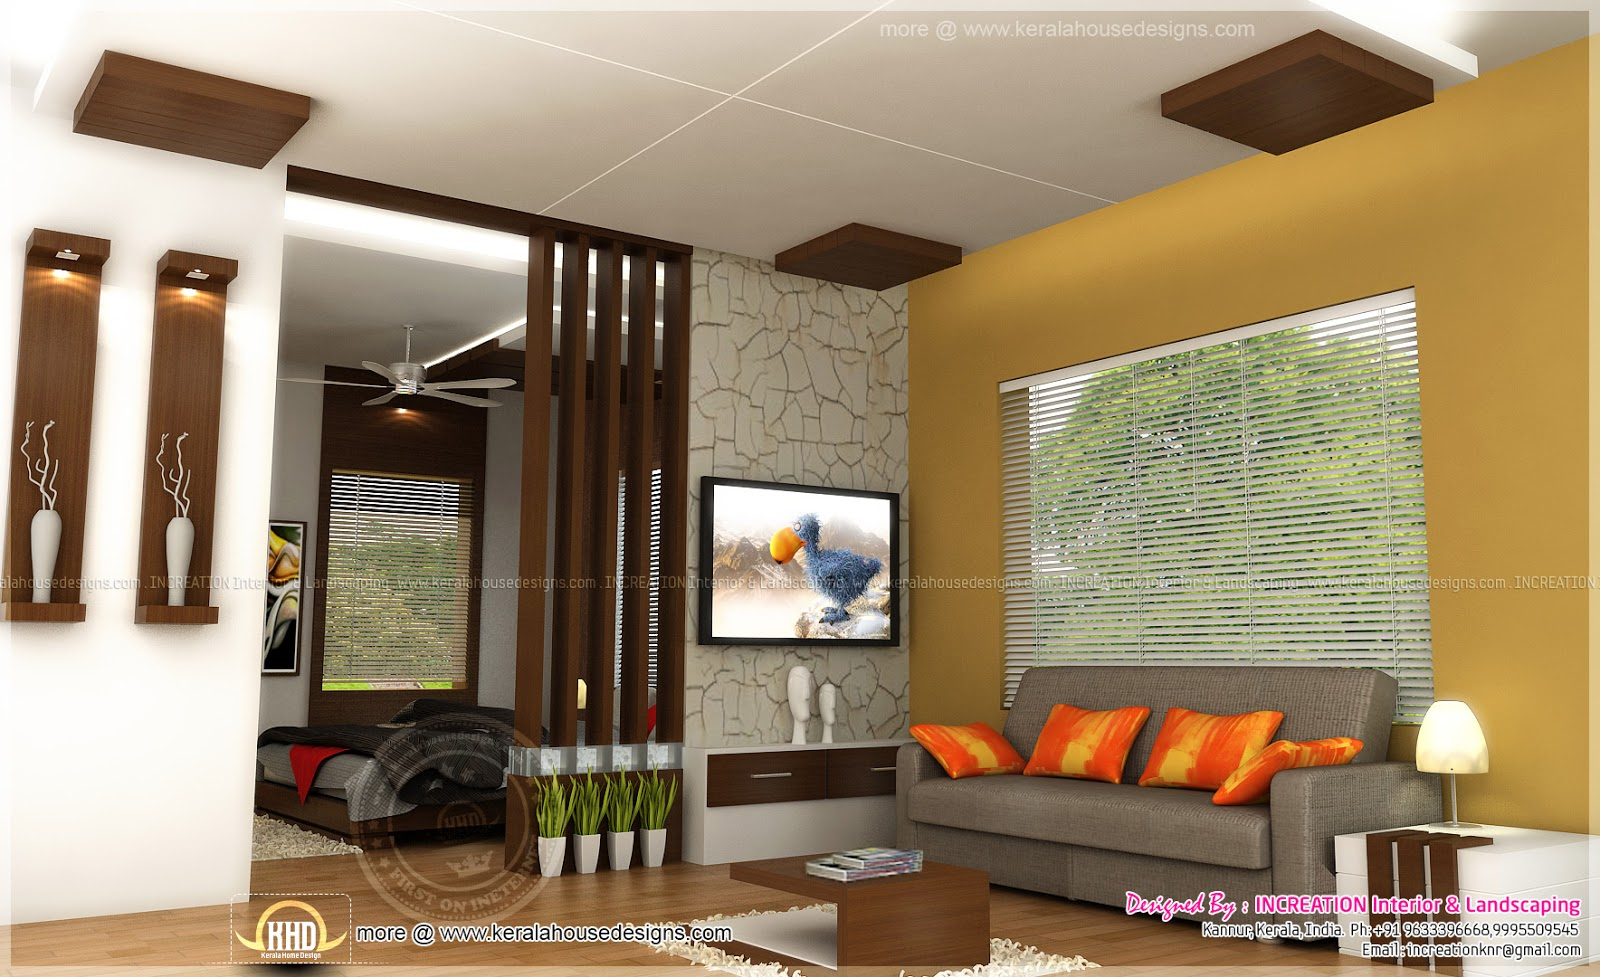 Interior designs from Kannur, Kerala - Kerala home design ...